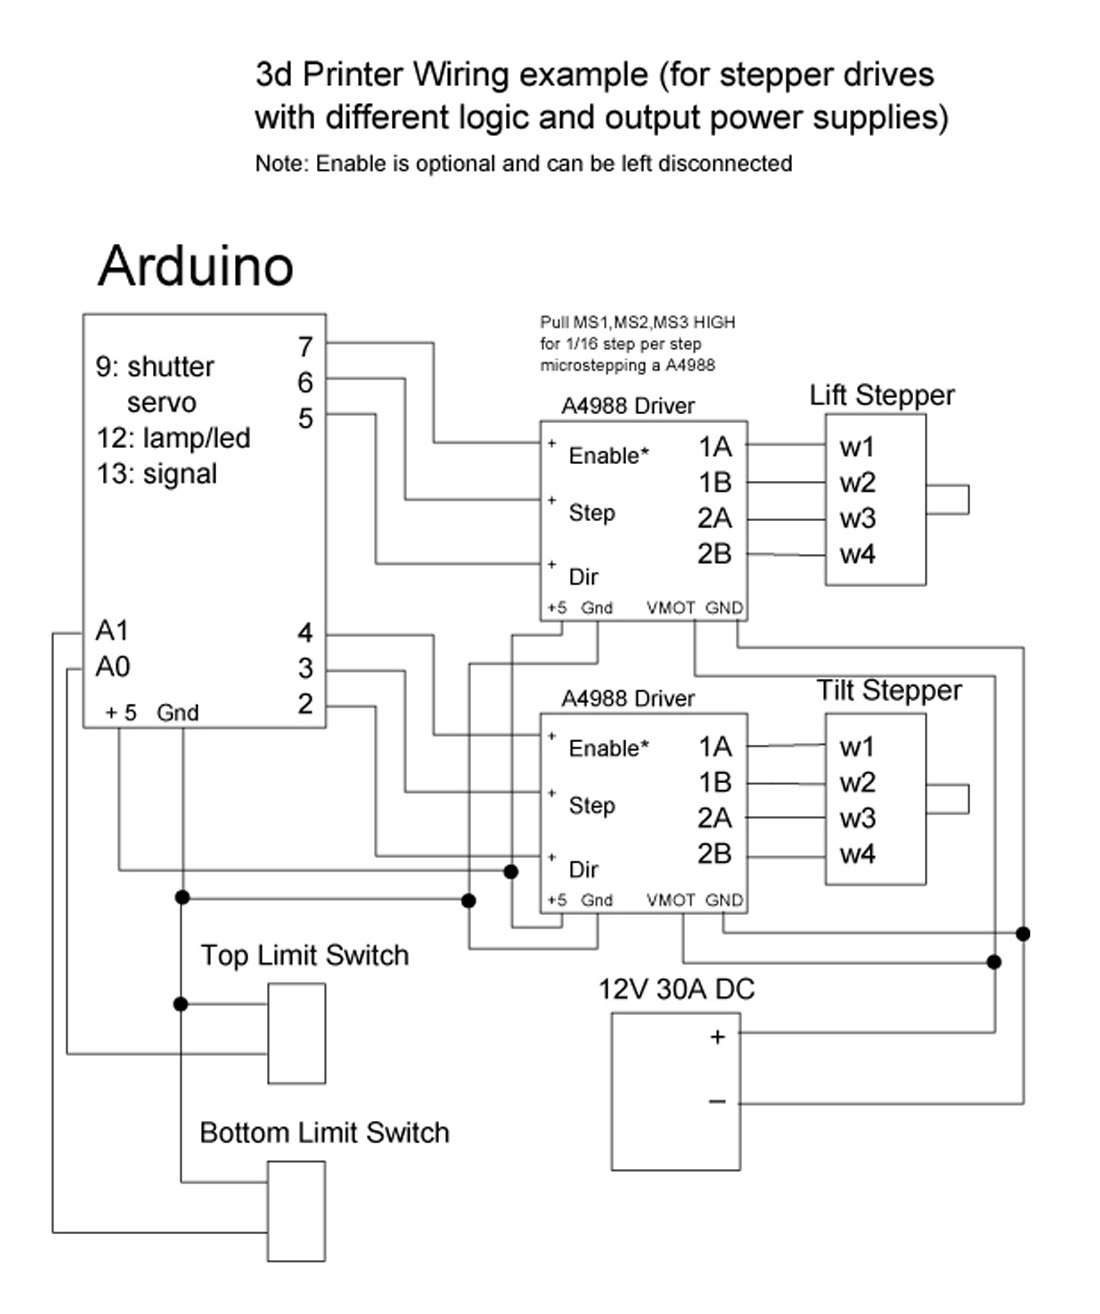 wiring diagram sidewinder 1 A4988 3d printer rebuild, software and electronics projects, interests a4988 wiring diagram at crackthecode.co